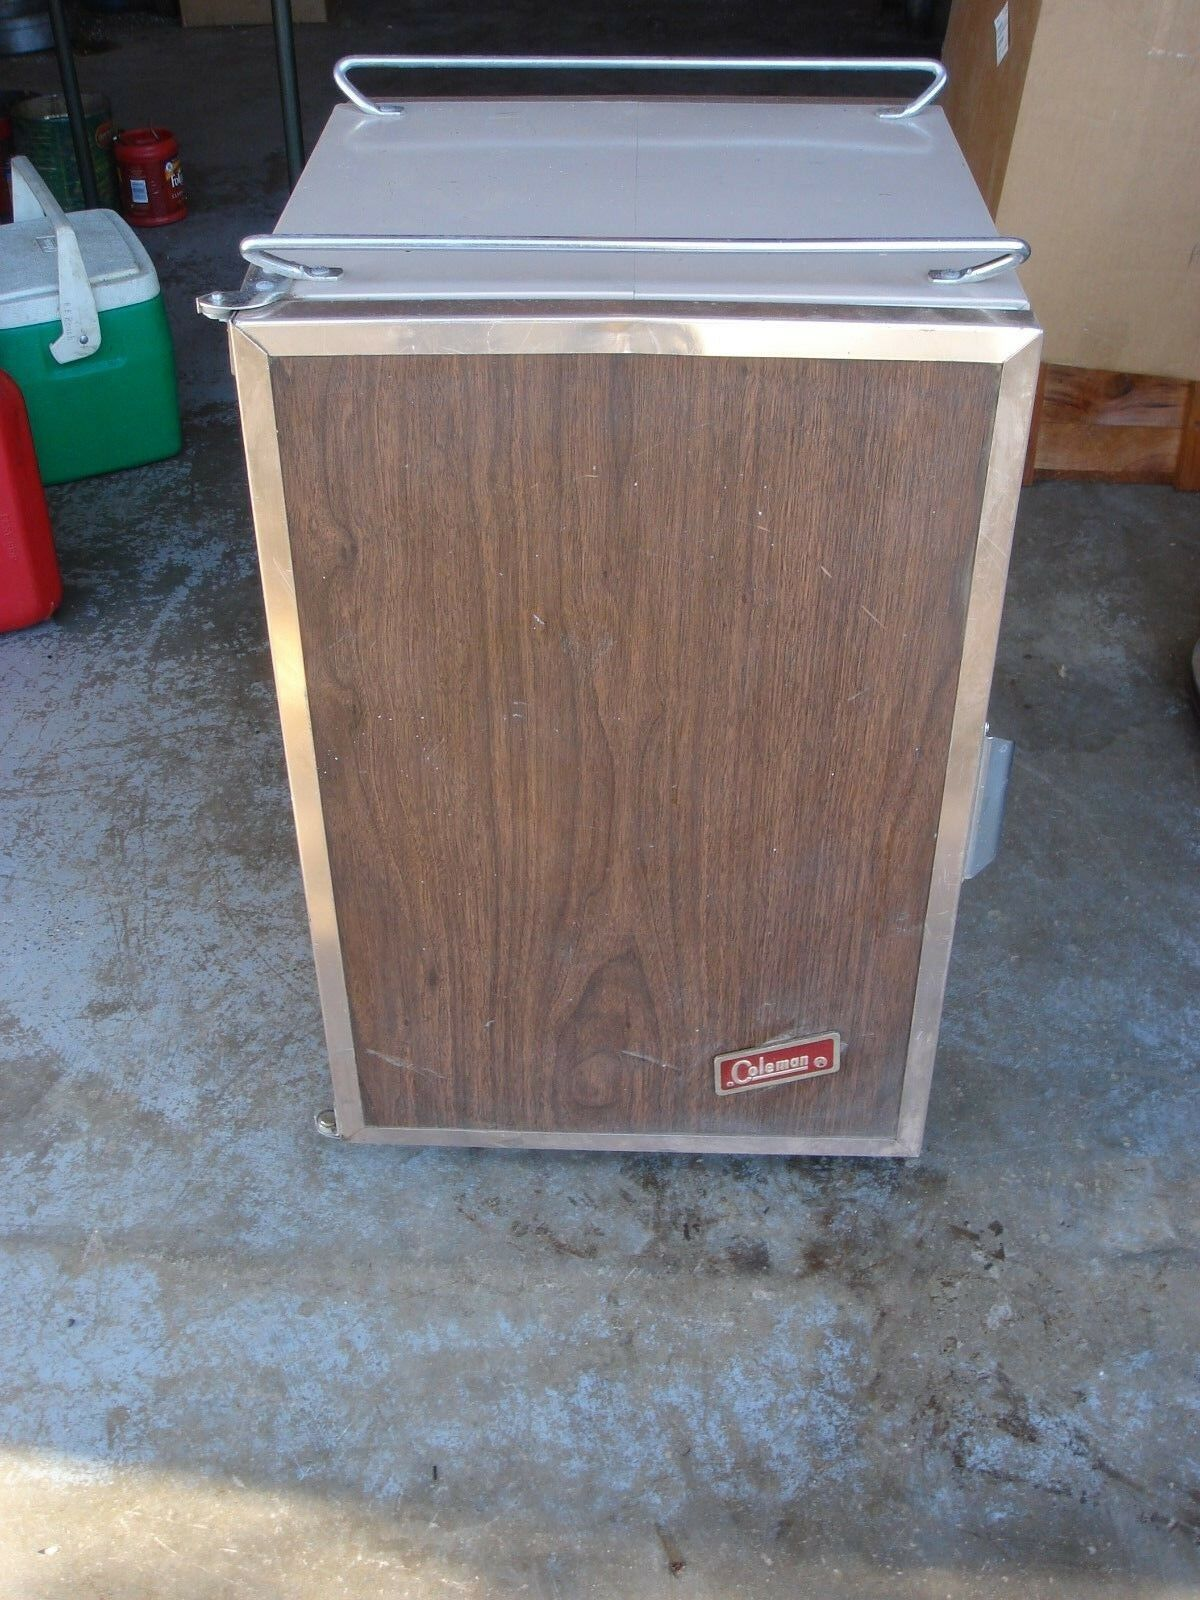 Vintage Coleman Cooler Congreenible Upright Refrigerator Ice Chest Box